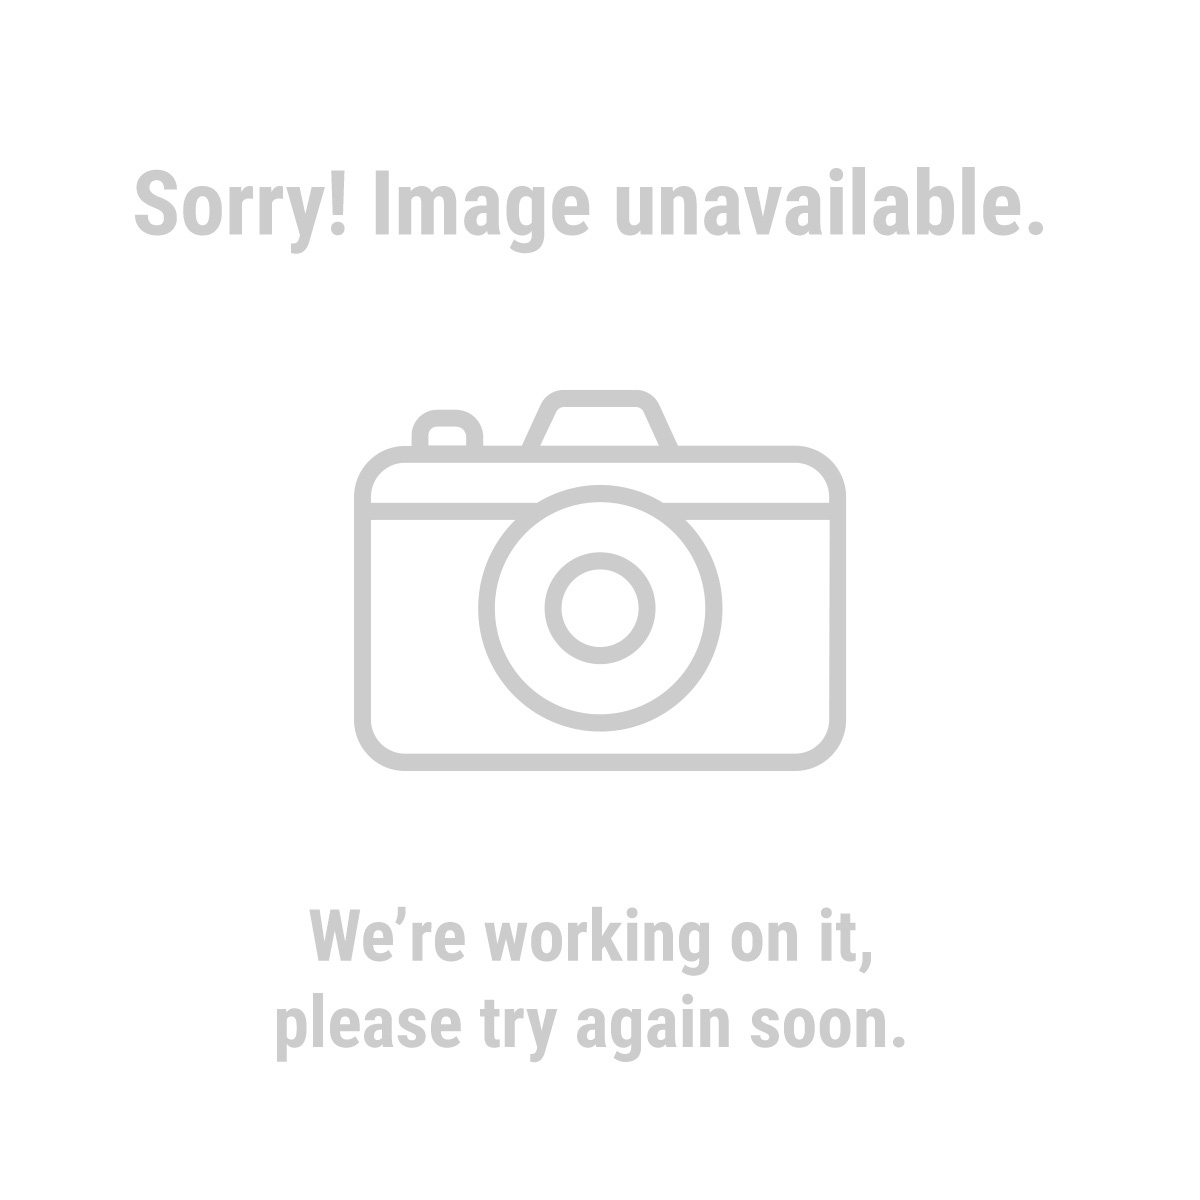 Badland Winches 61604 3500 lb. ATV/Utility Electric Winch with Automatic Load-Holding Brake